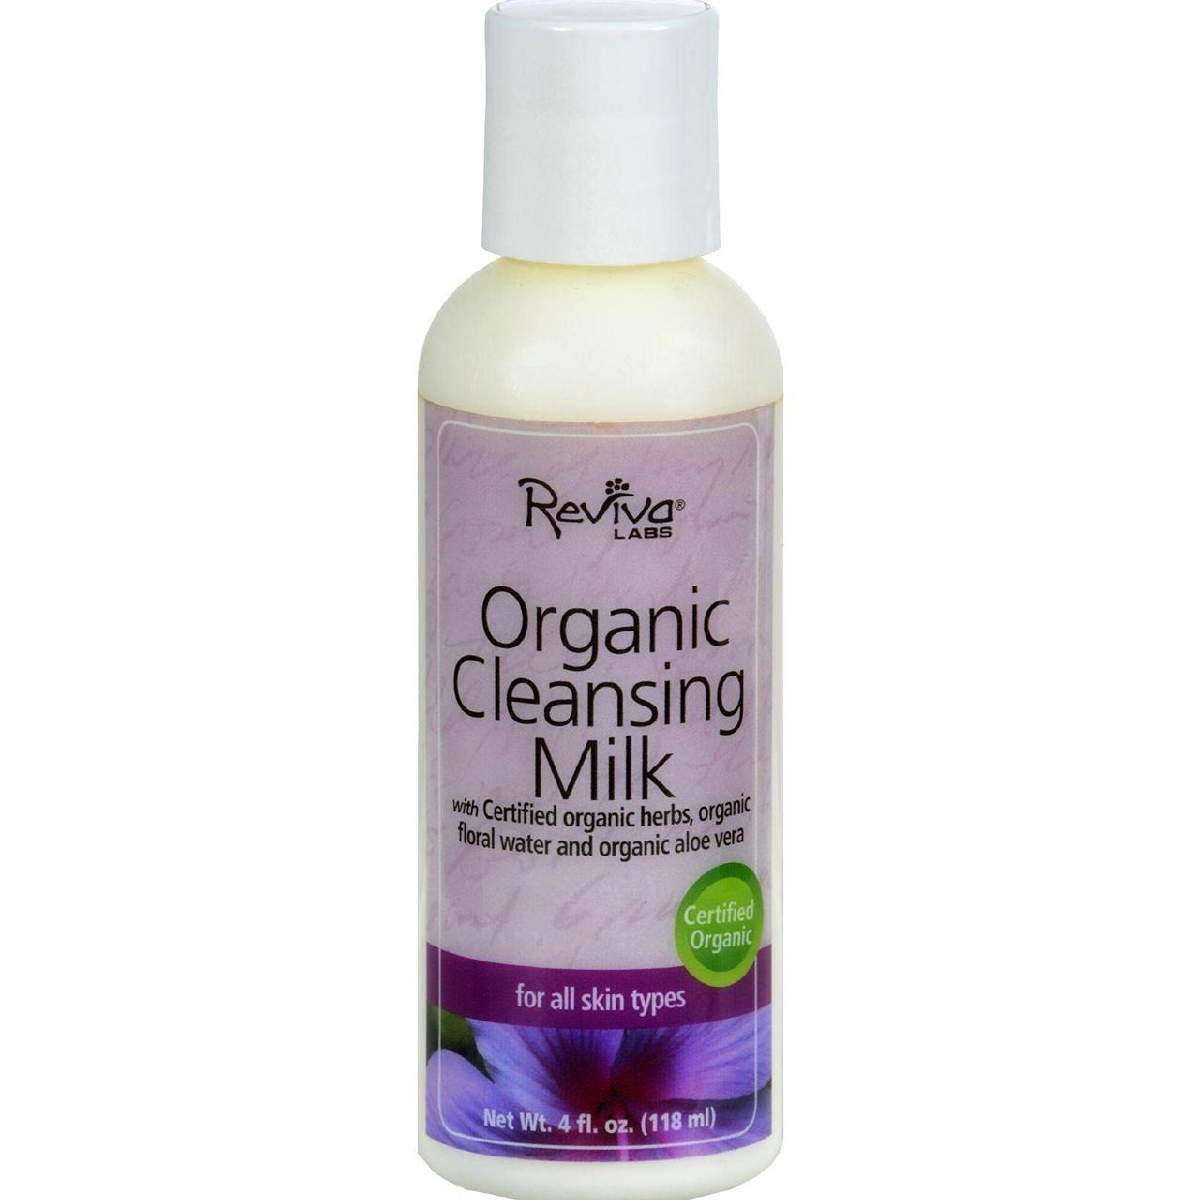 Reviva Labs Organic Cleansing Milk - 4 Fl Oz